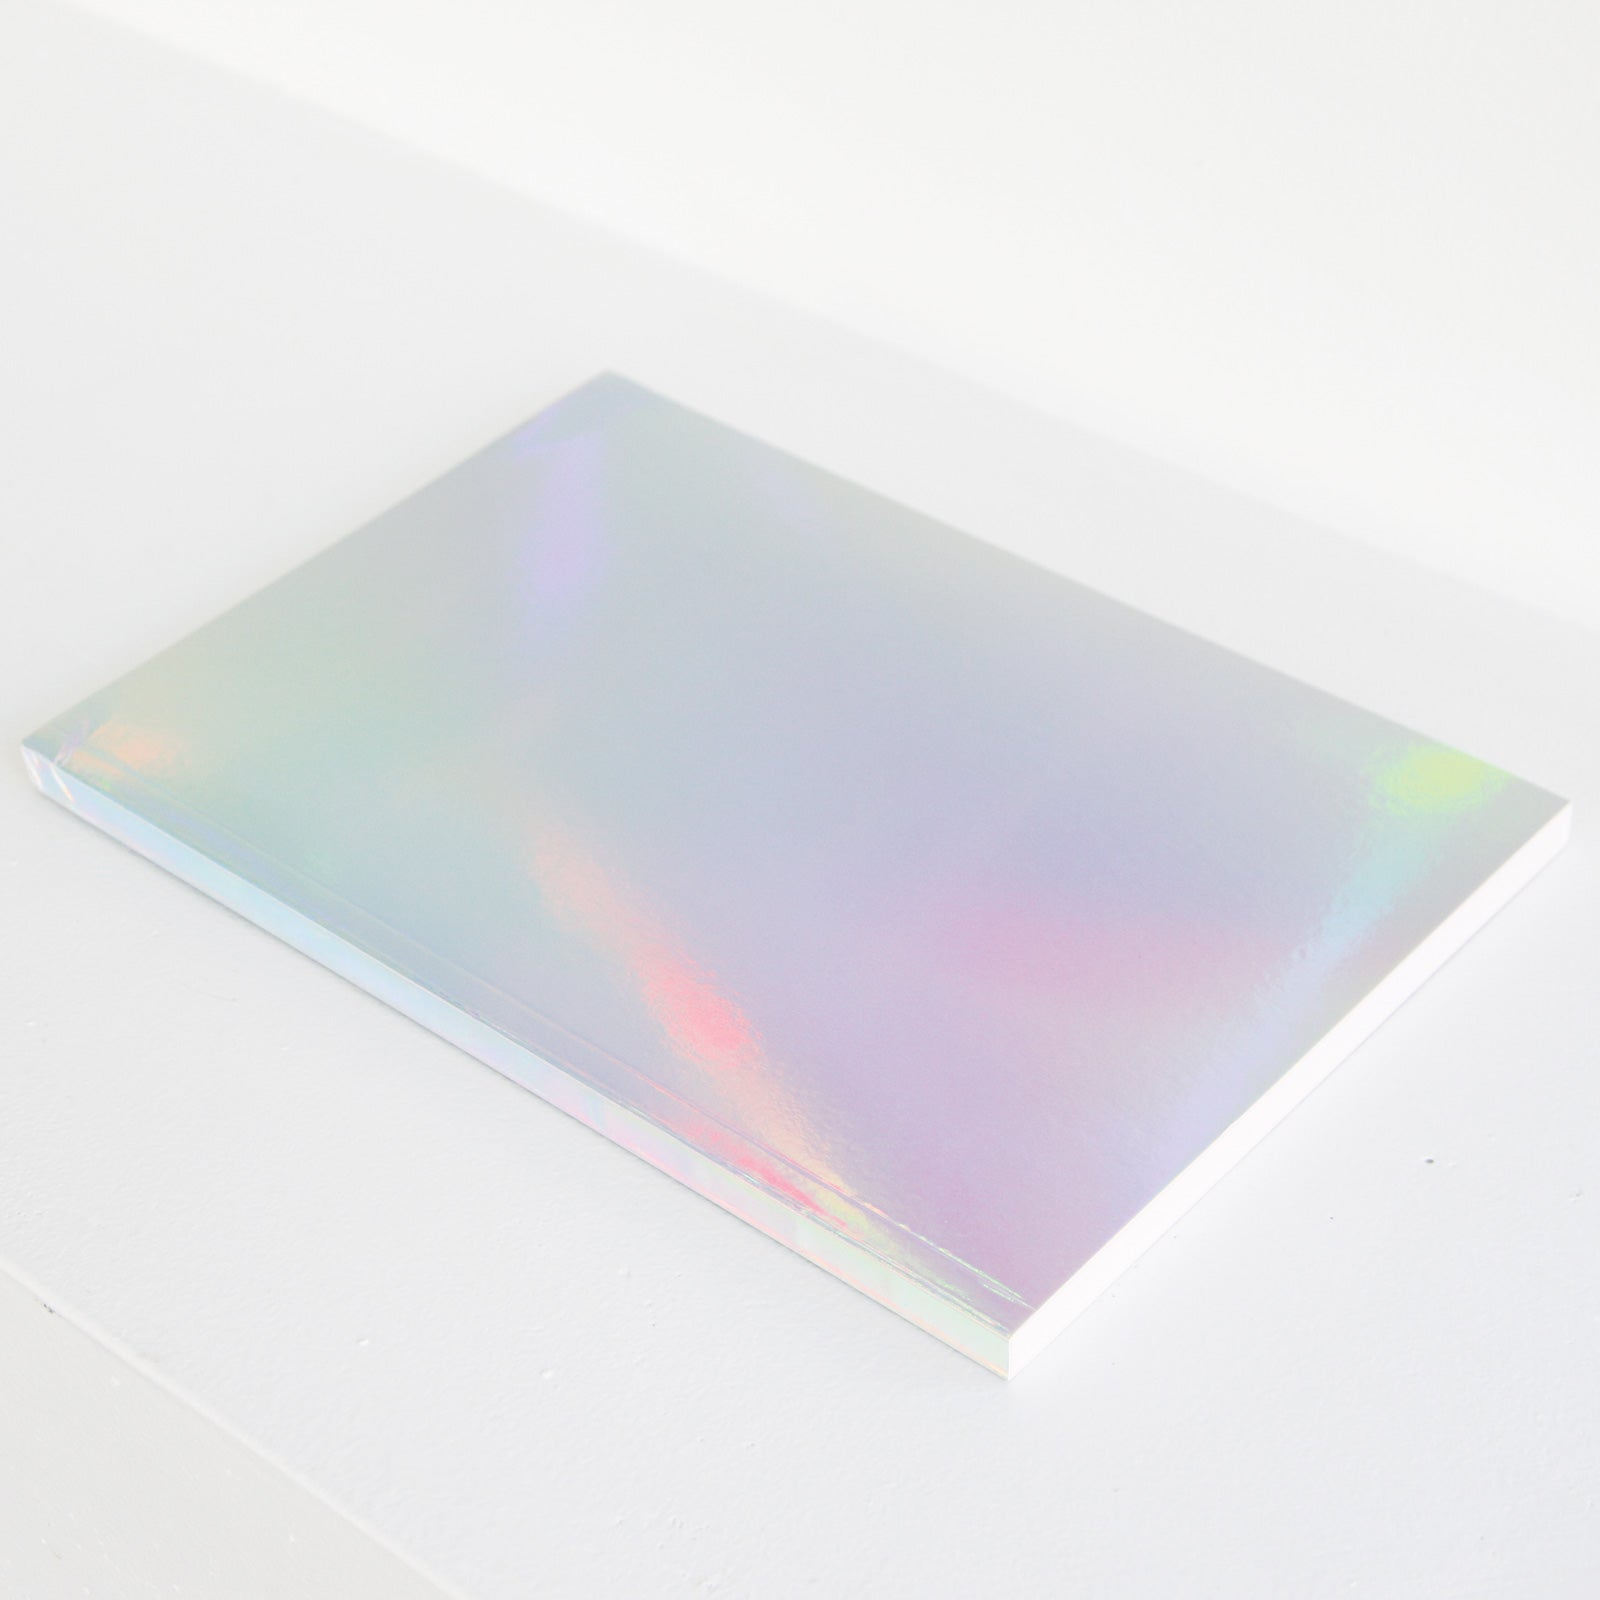 Holographic Notebook - Sustain - Gallery and Workspace | Art, Prints, Zines, Workshops | Chicago, IL